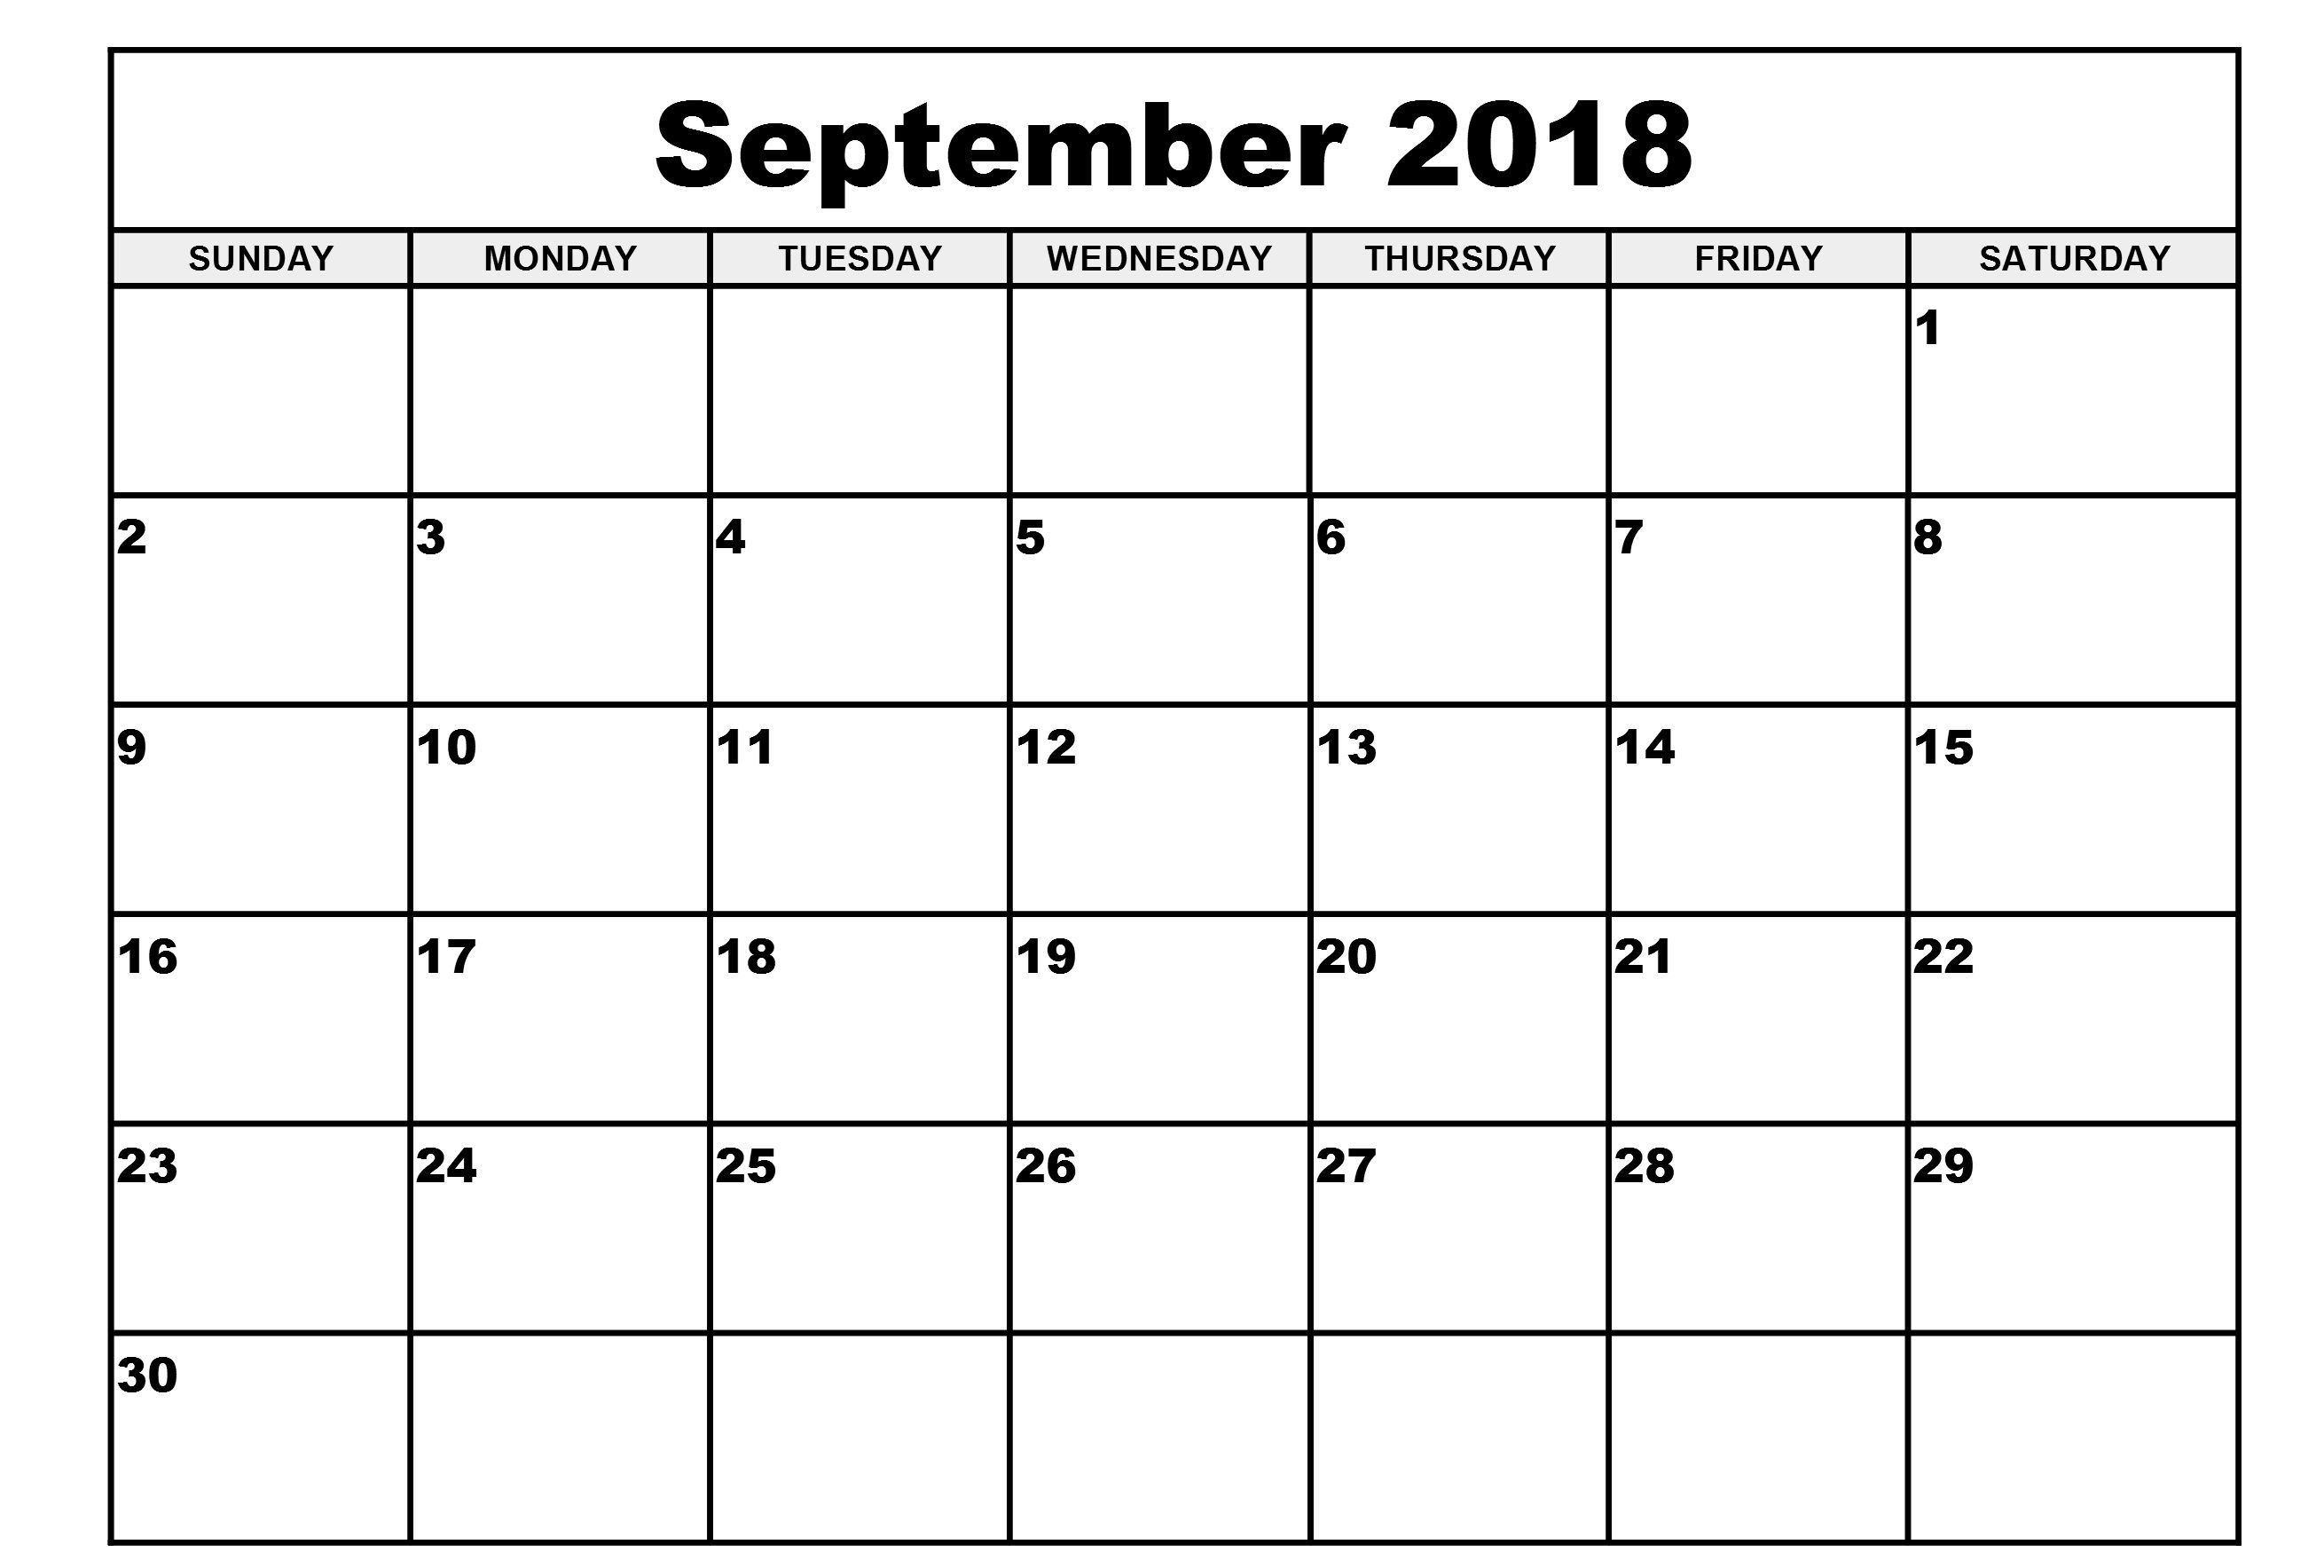 September 2018 Calendar Template | Printable Templates | 2018 with regard to Blank September Calendar Printable